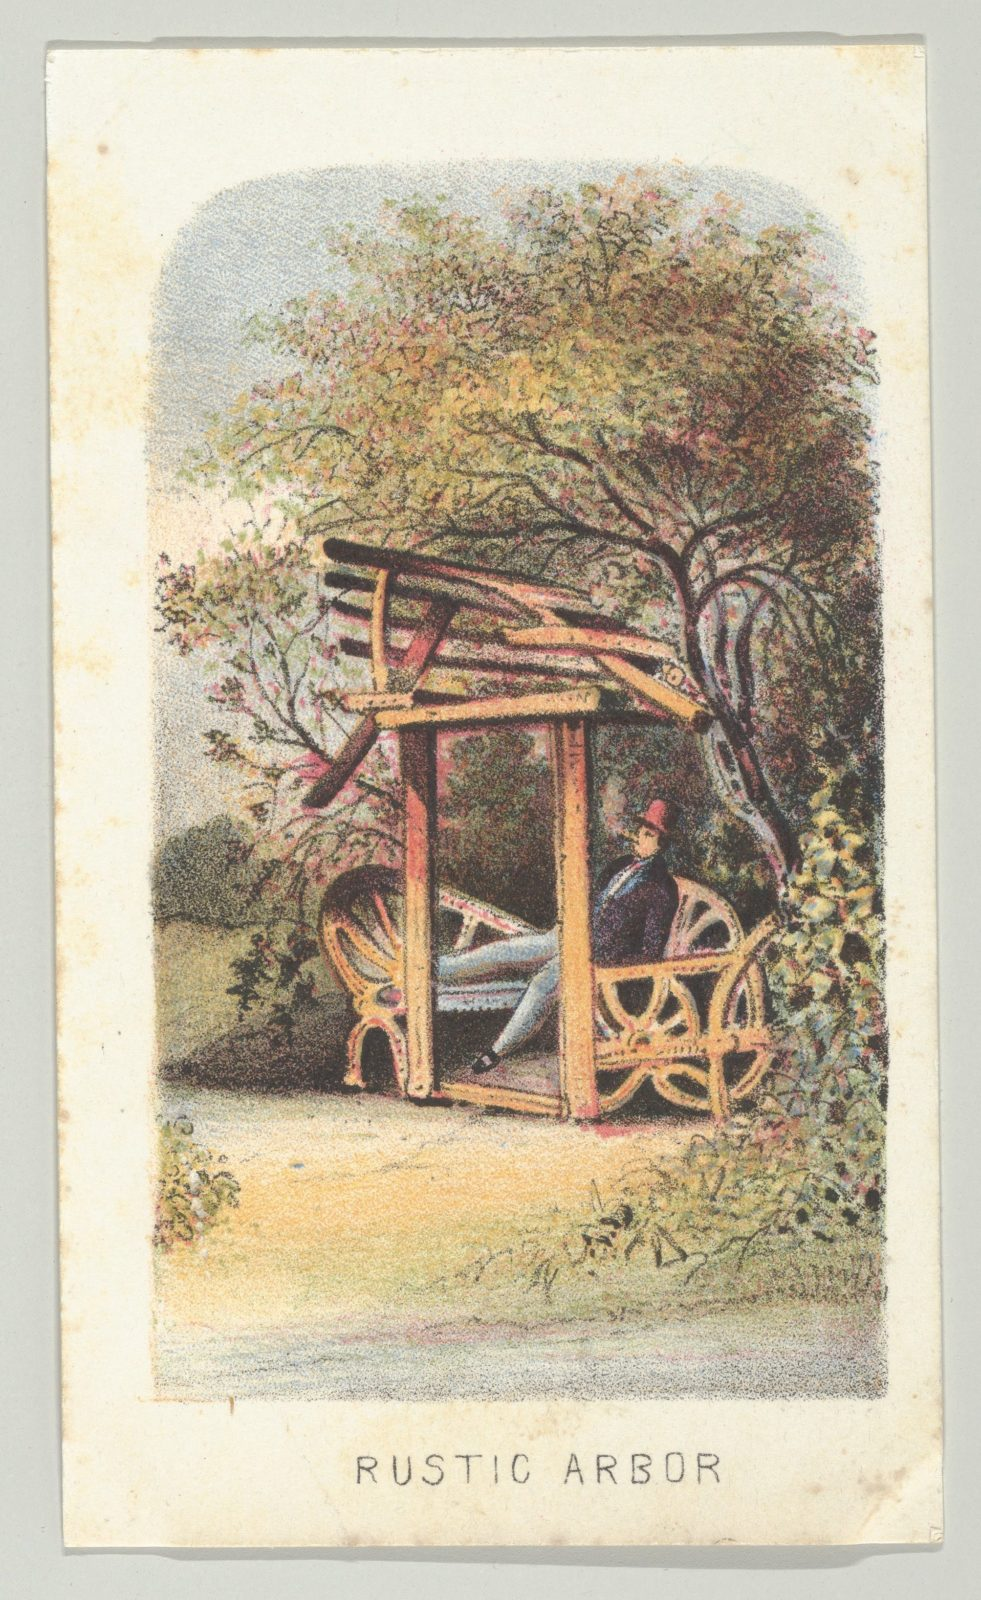 Rustic Arbor, from the series, Views in Central Park, New York, Part 2